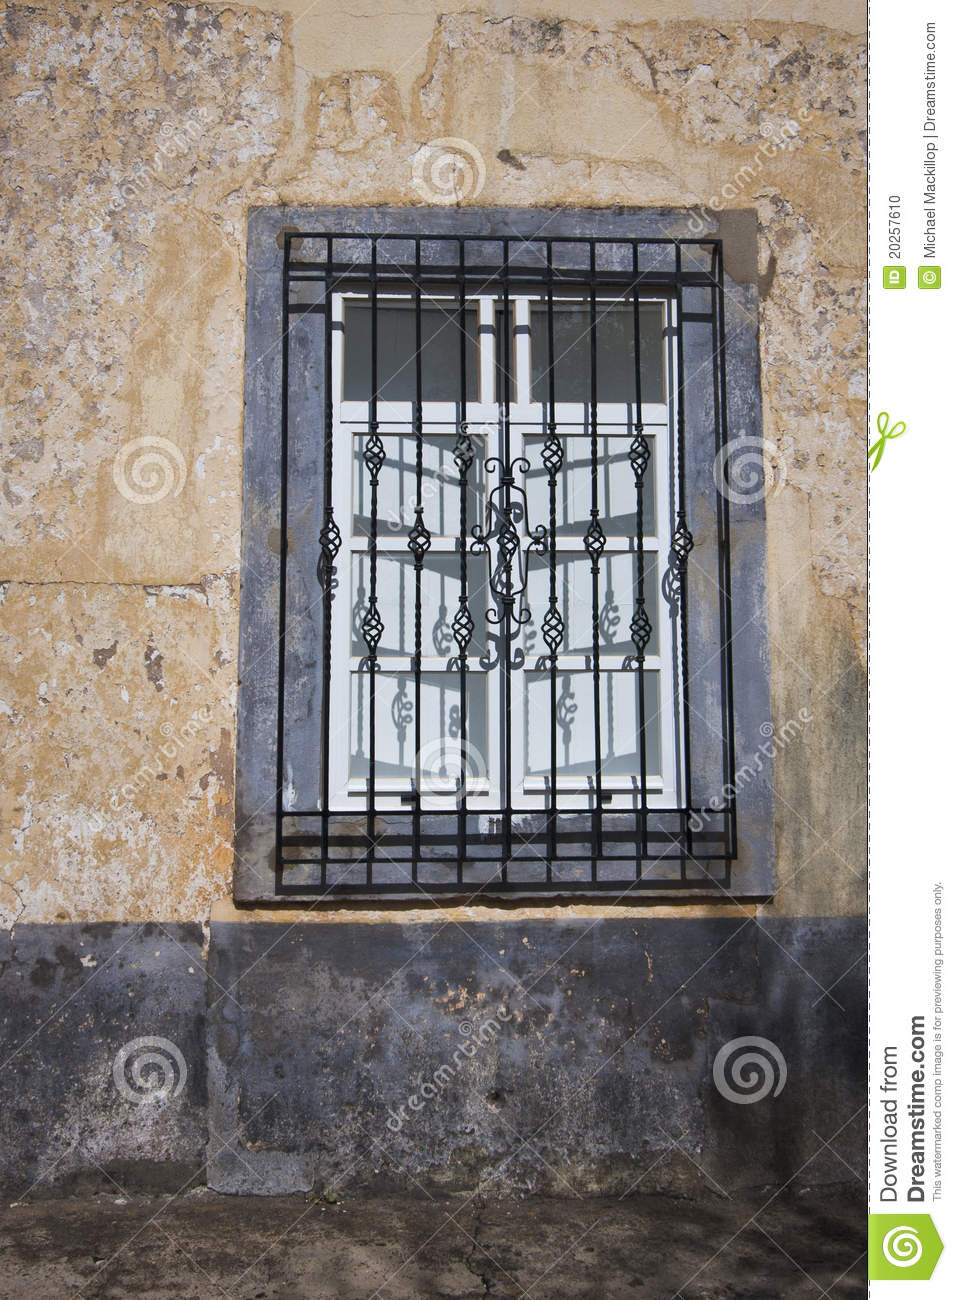 Wrought Iron Window Grille Stock Photo - Image: 20257610